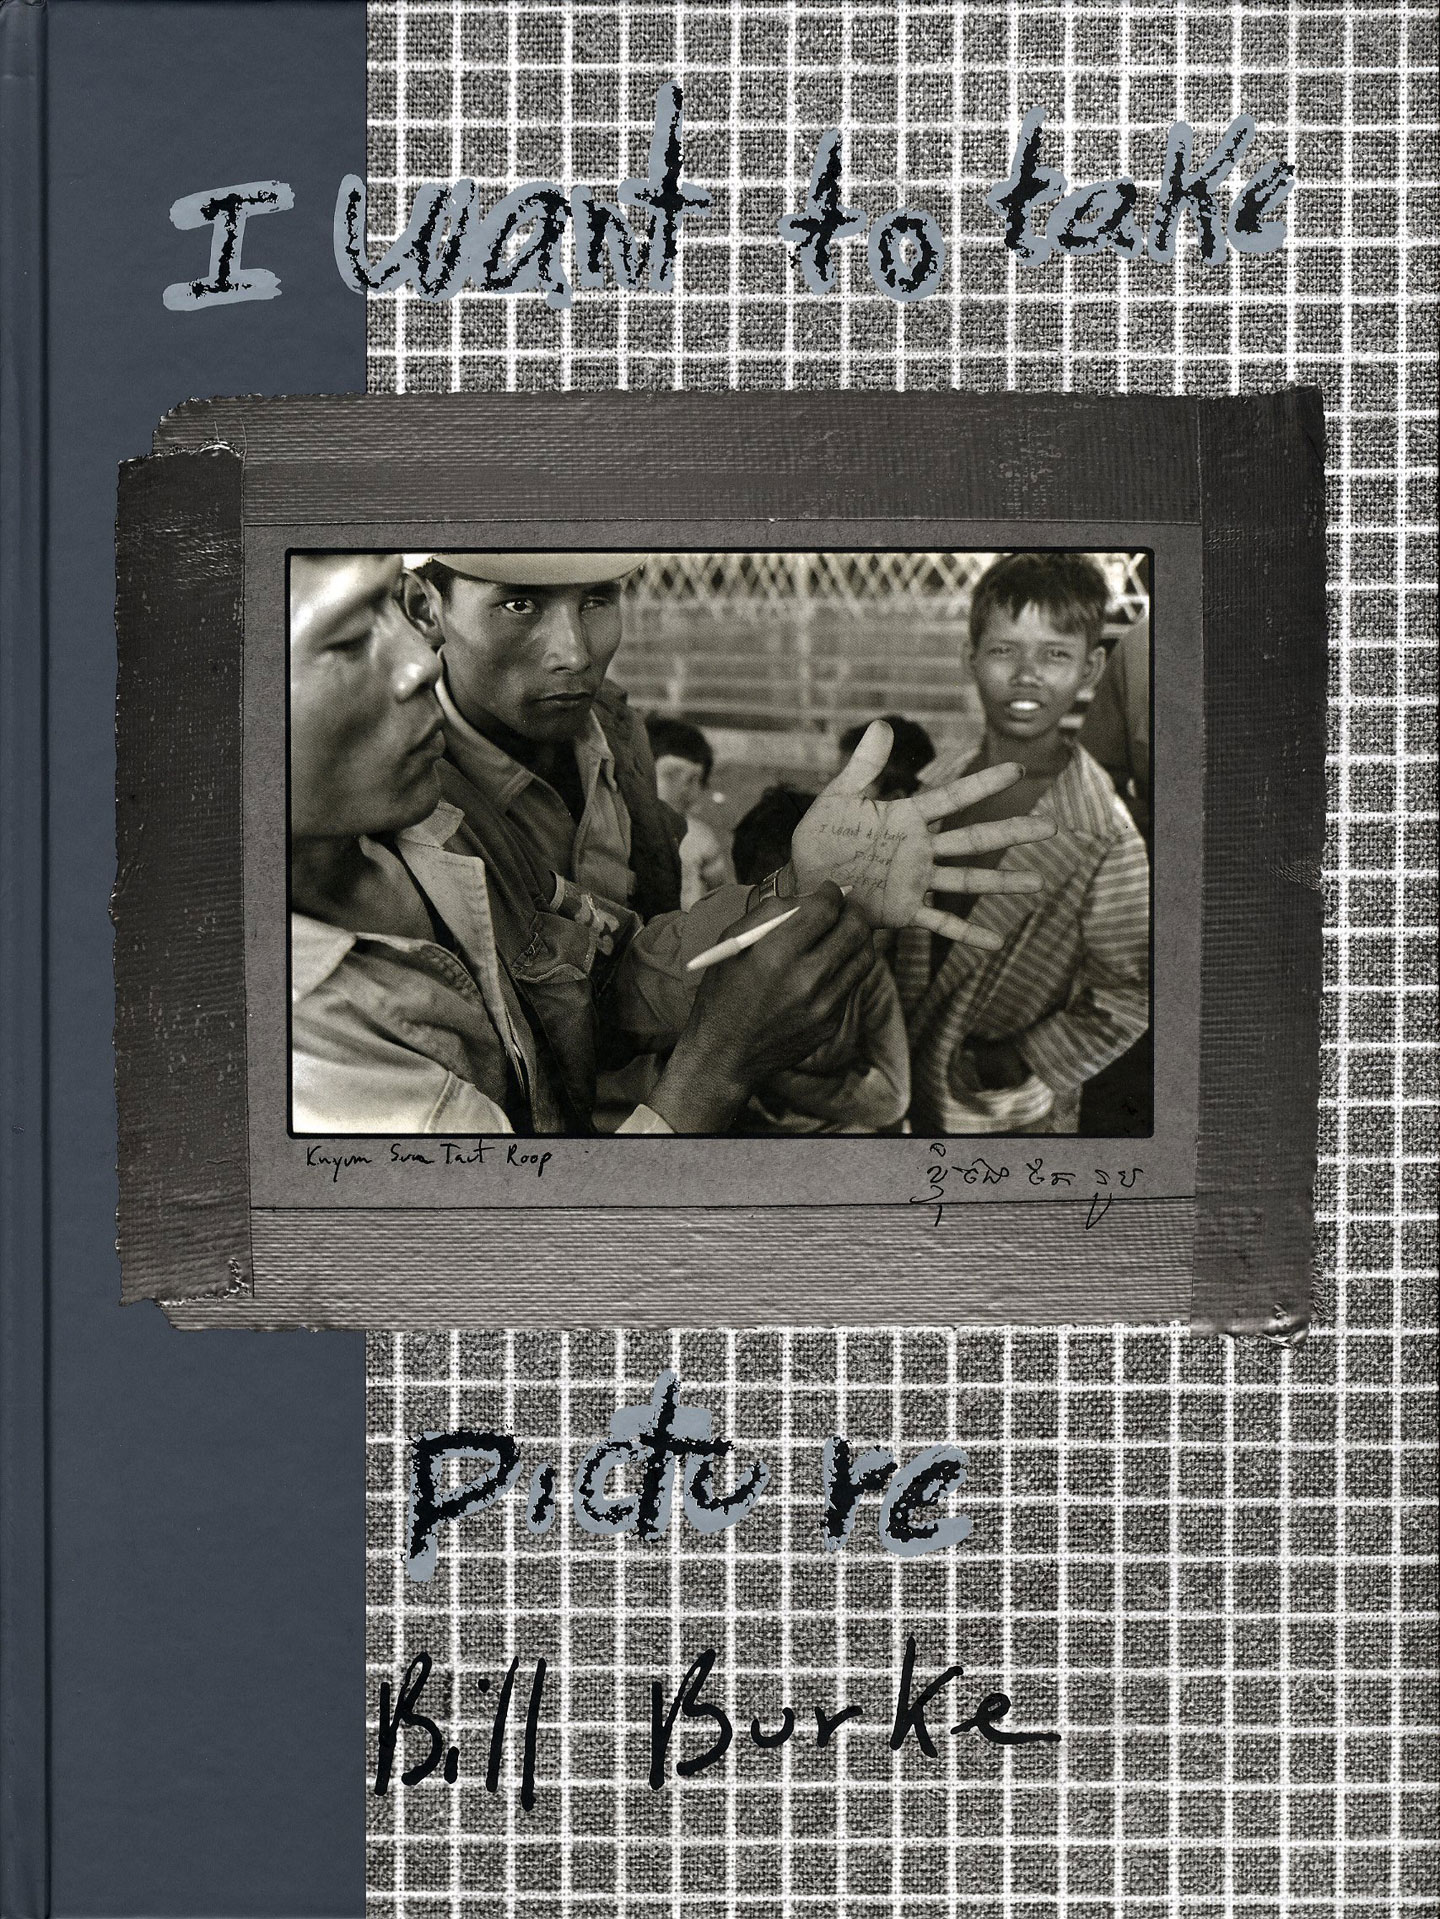 Bill Burke: I Want to Take Picture (Twin Palms Reissue), Limited Edition (with Gelatin Silver Print) [SIGNED]